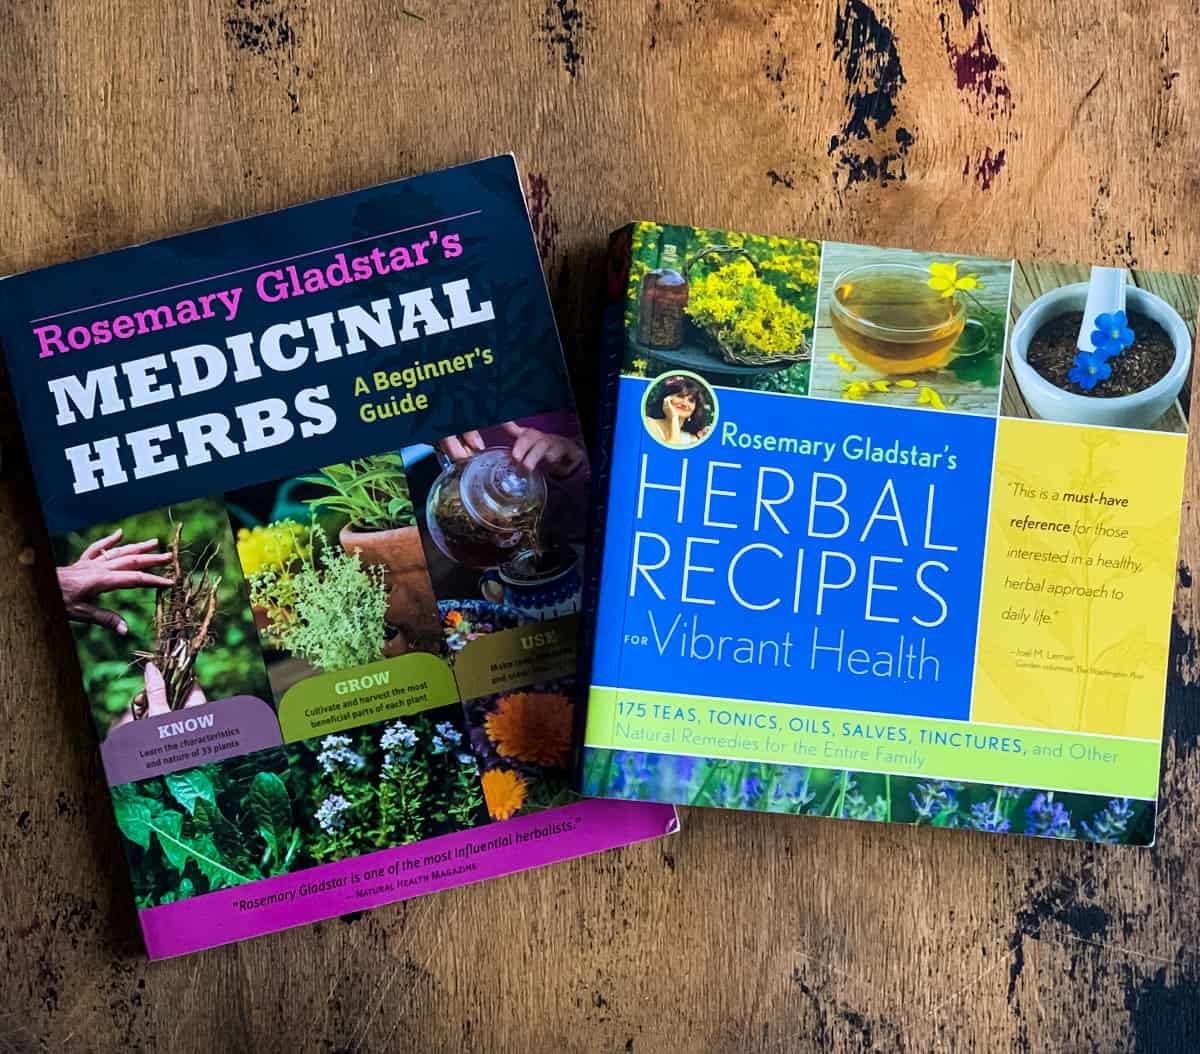 rosemary gladstar's medicinal herbs a beginners guide and herbal recipes for vibrant health